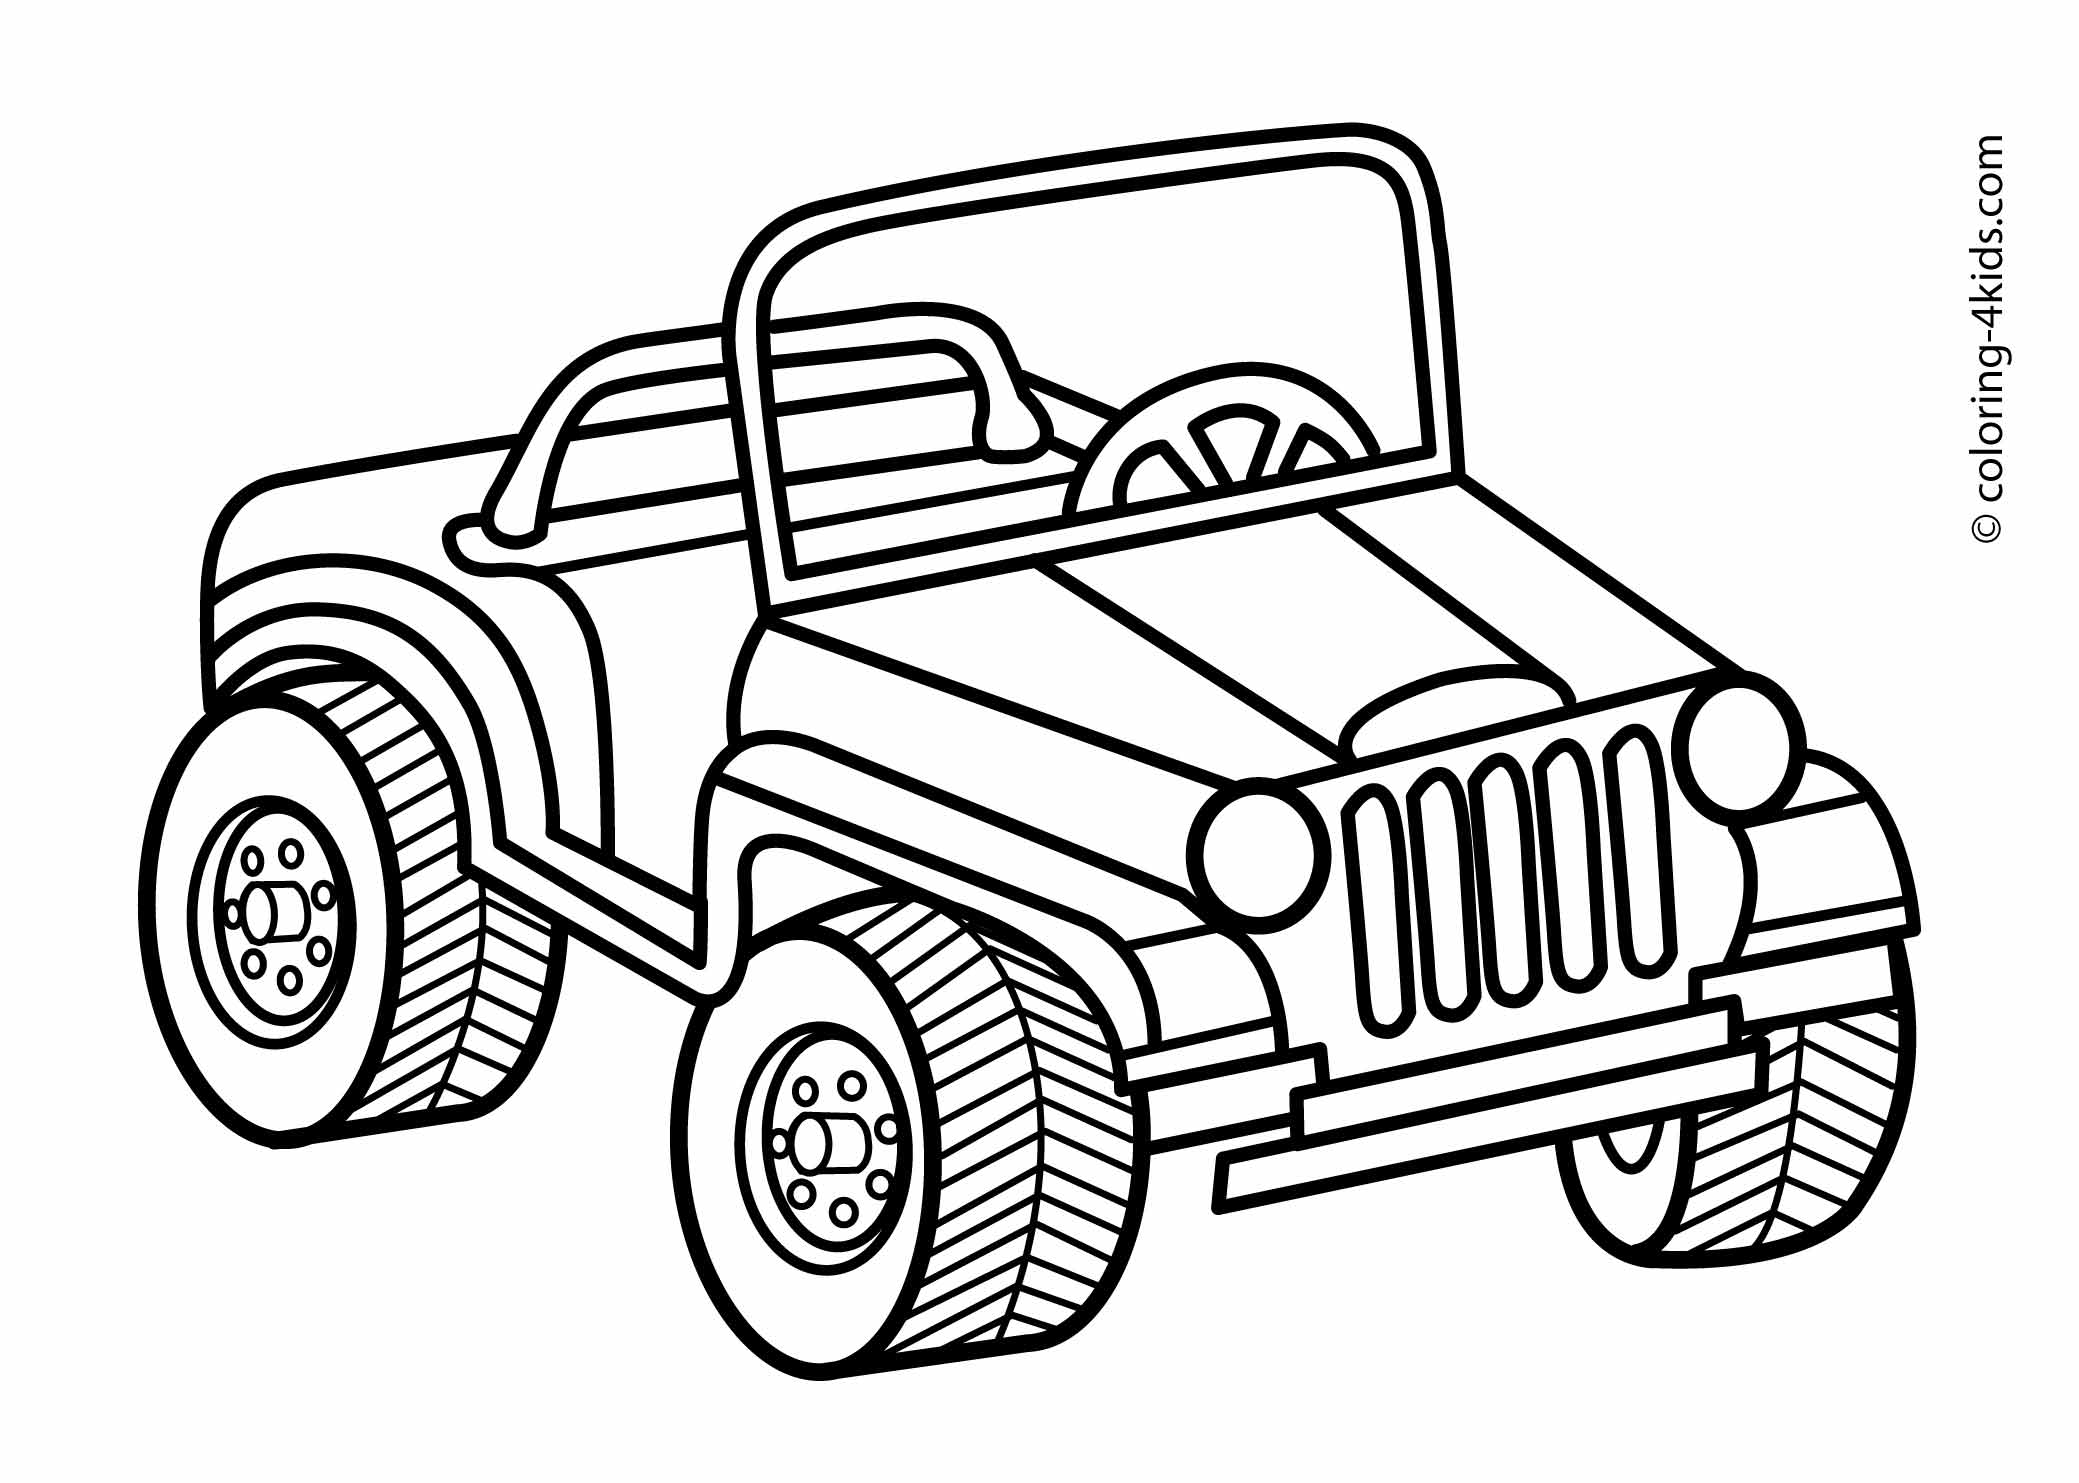 2079x1483 Jeep Transportation Coloring Pages For Kids Printable Jungle